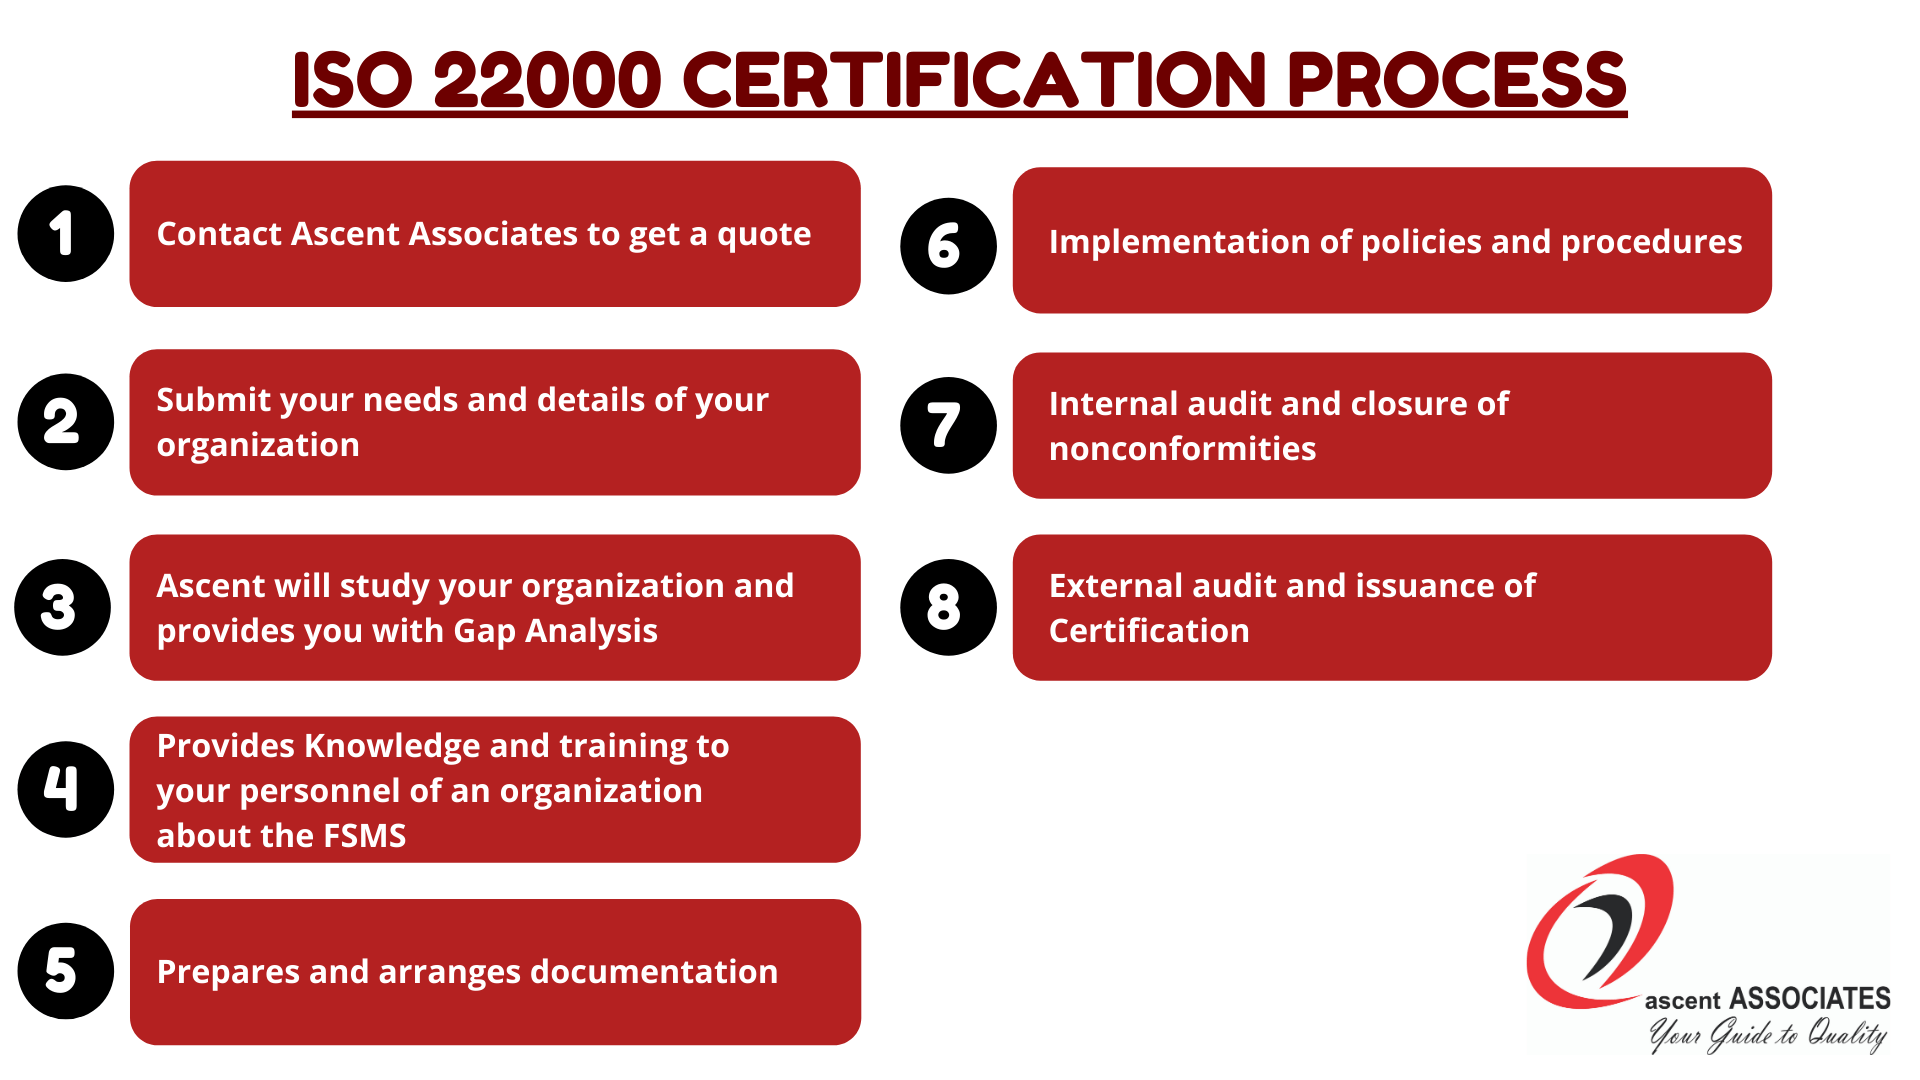 ISO 22000 Certification Process